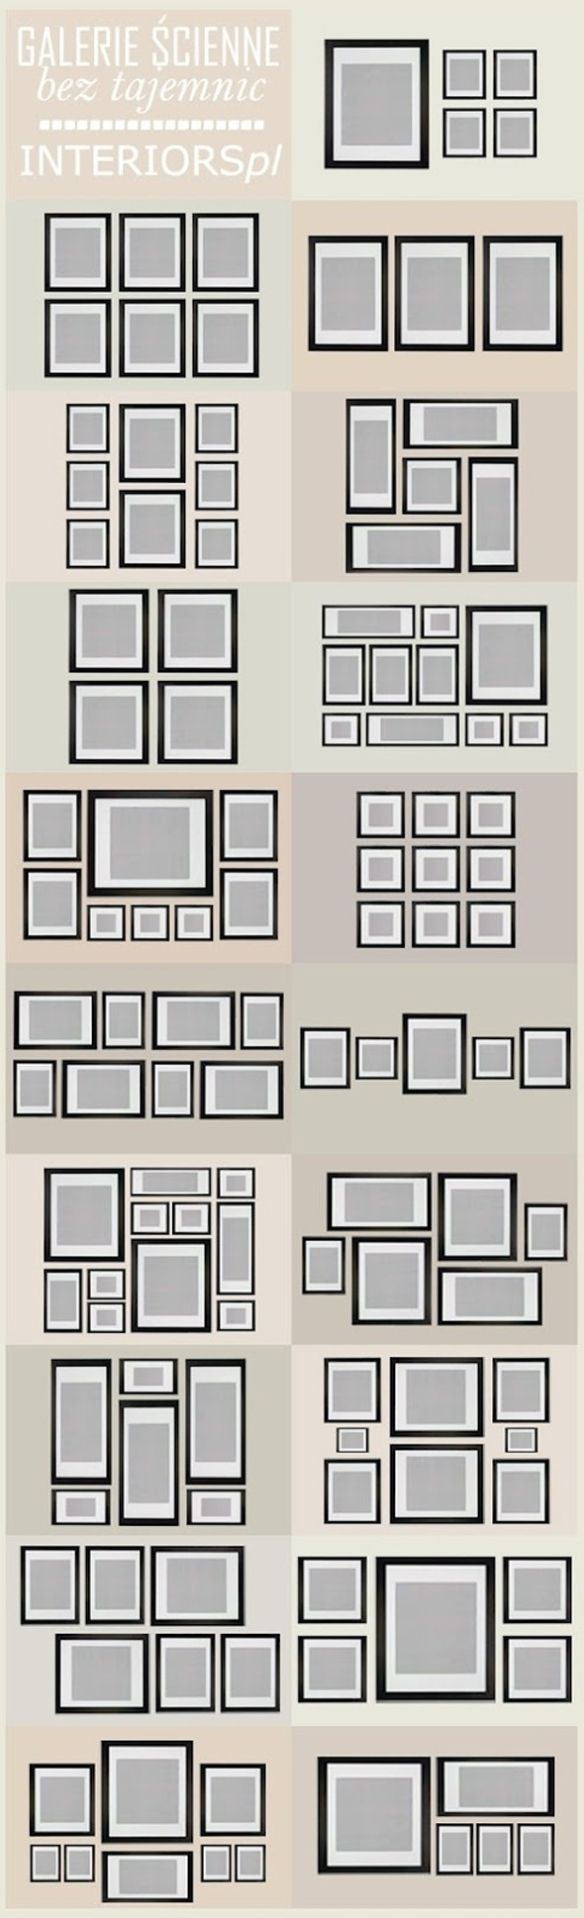 Best 25+ Frame arrangements ideas only on Pinterest | Wall frame ...